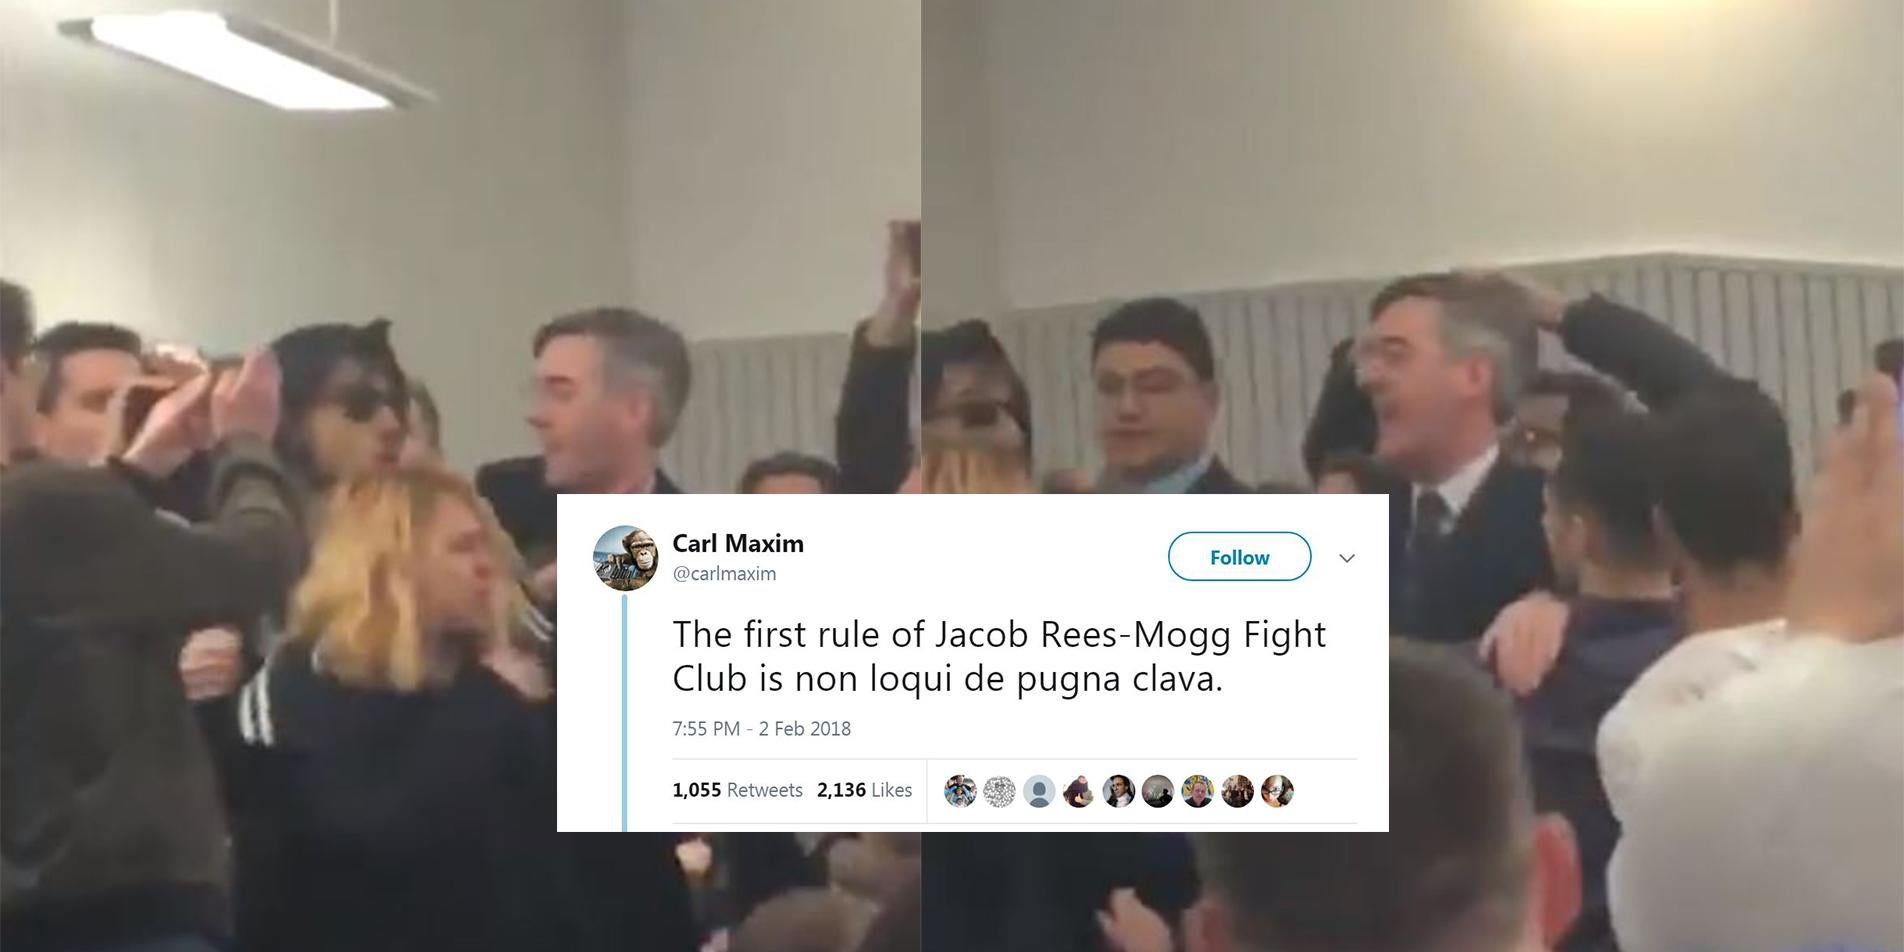 Just 8 really funny jokes about the Jacob Rees-Mogg scuffle | indy100